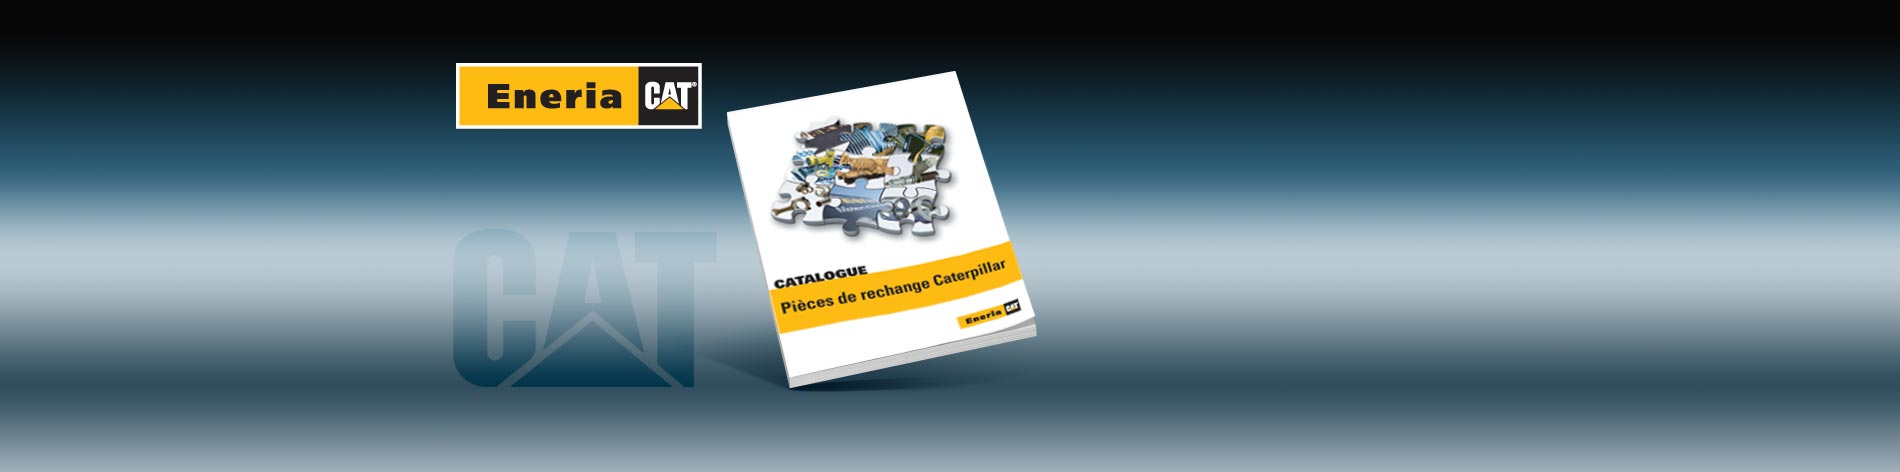 "Thousands of available Caterpillar parts are detailed in the ""Your Reliable Dealer"" catalogue"